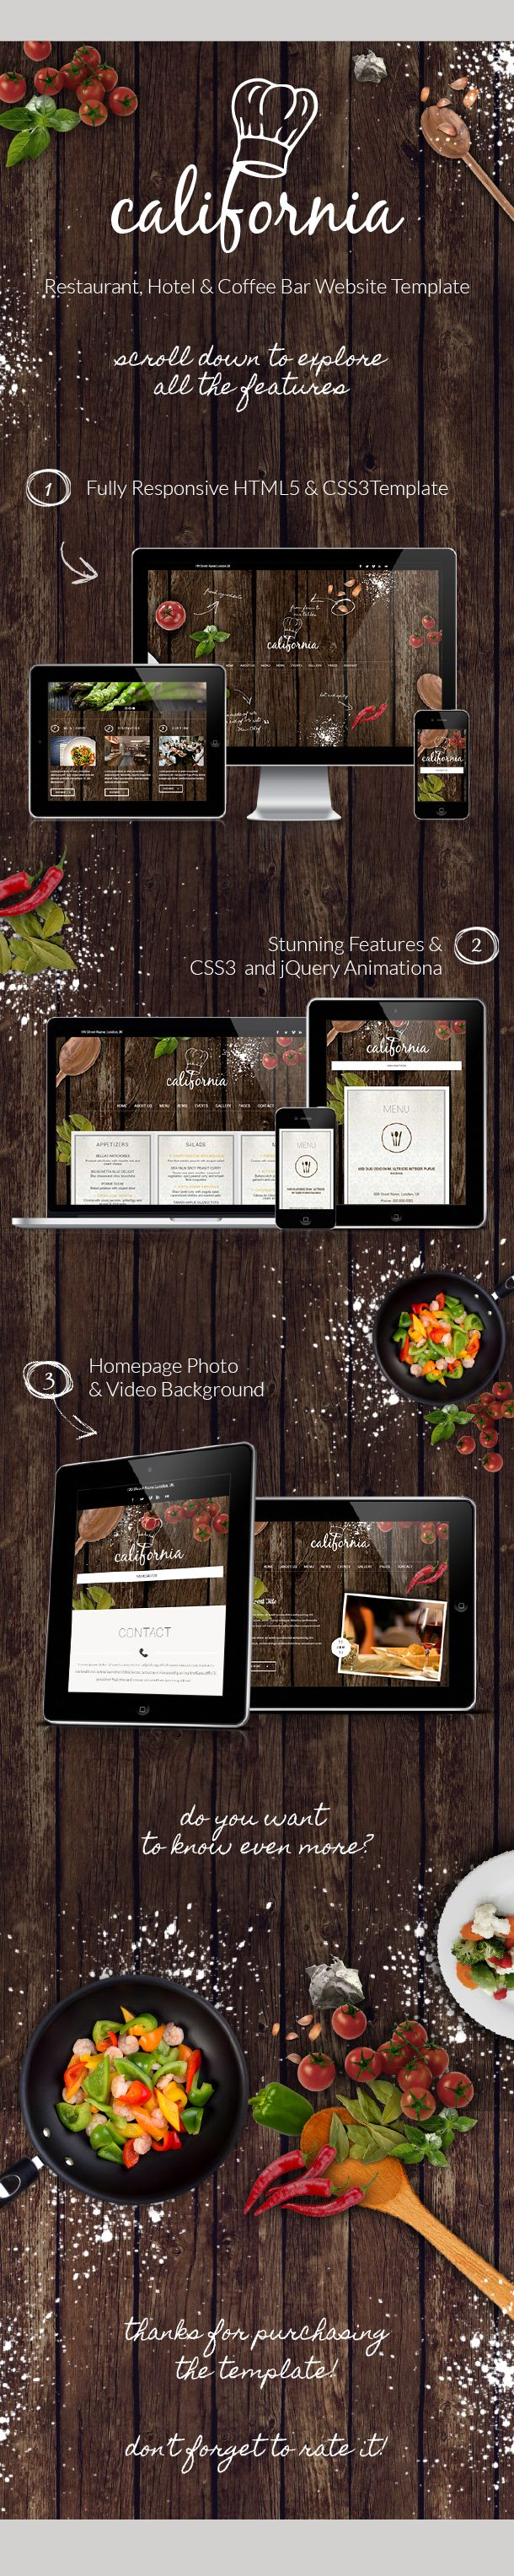 Description  California – Restaurant Hotel Coffee Bar Website Template is a fully configurable and easy to use responsive website template with HTML5 Video Background Support and a lot of oth...